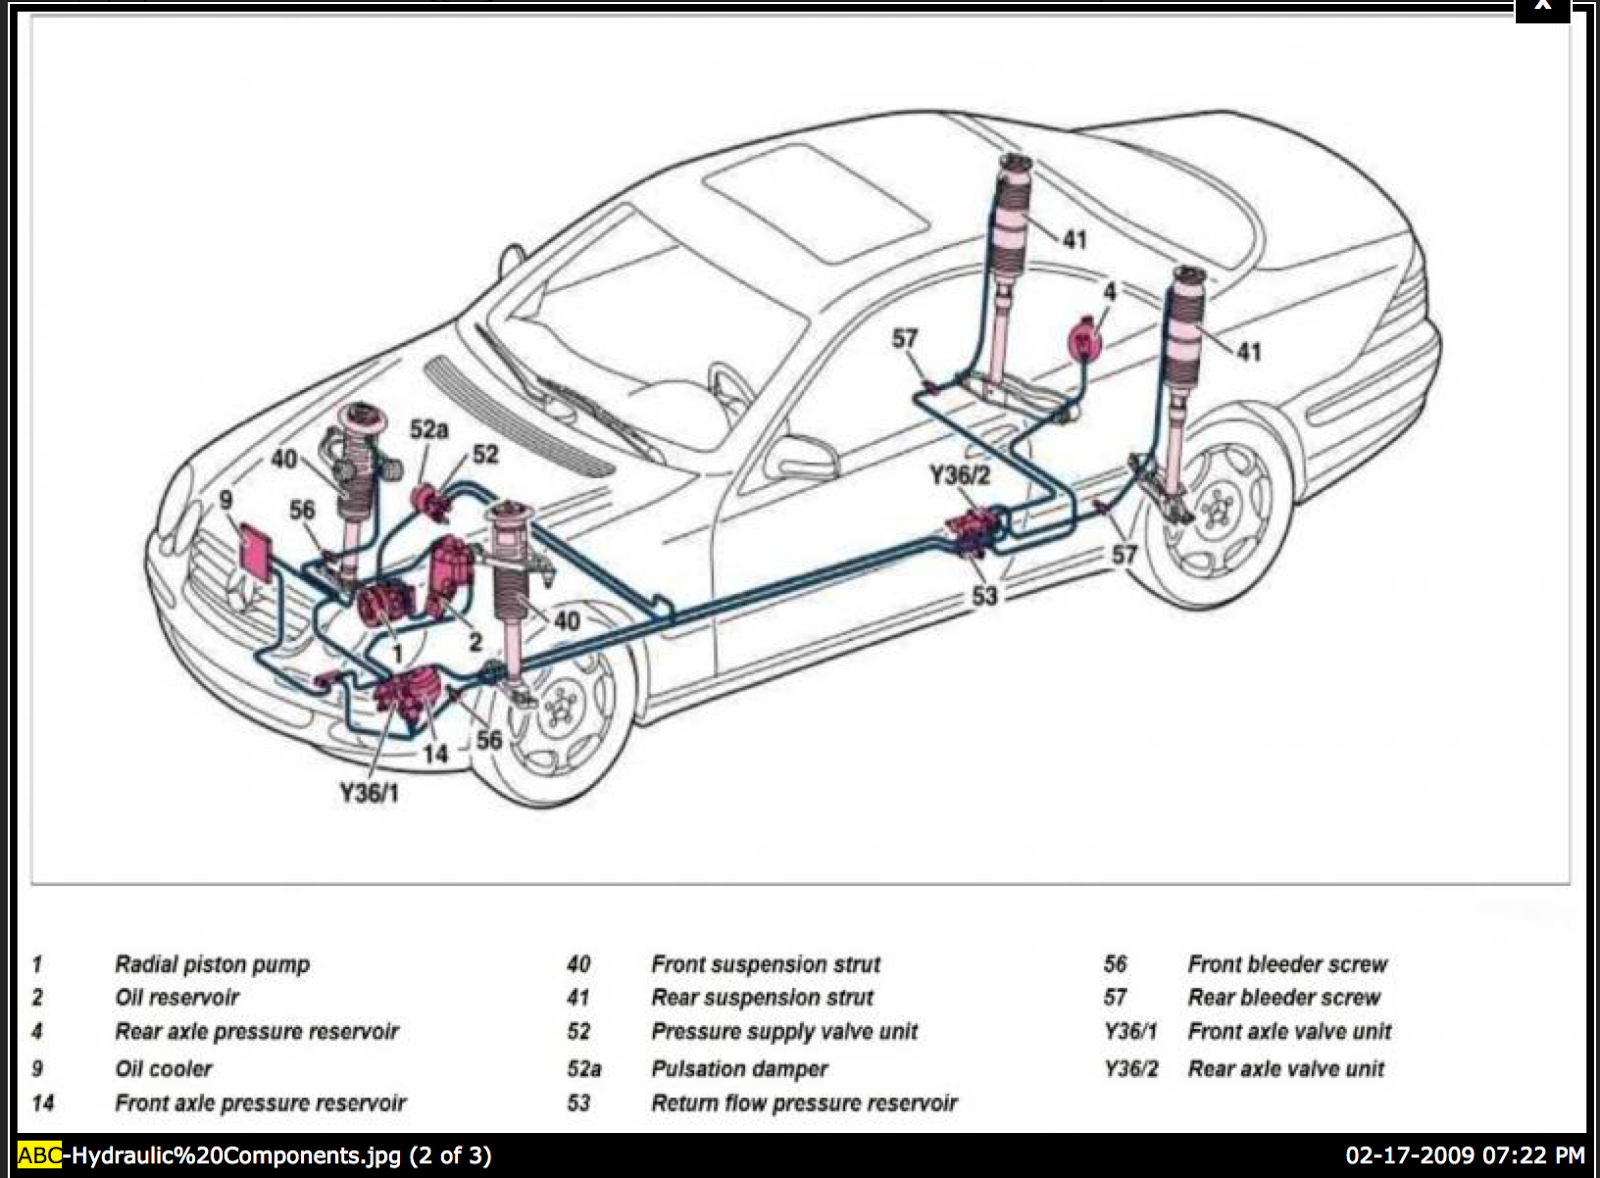 Vw Engine Tools in addition 49422 likewise Vehicle Cl Diagram also Mercedes C Cl Fuse Box Diagram as well Air Fuel Ratio Sensor Wiring Diagram. on wiring diagram mercedes a cl